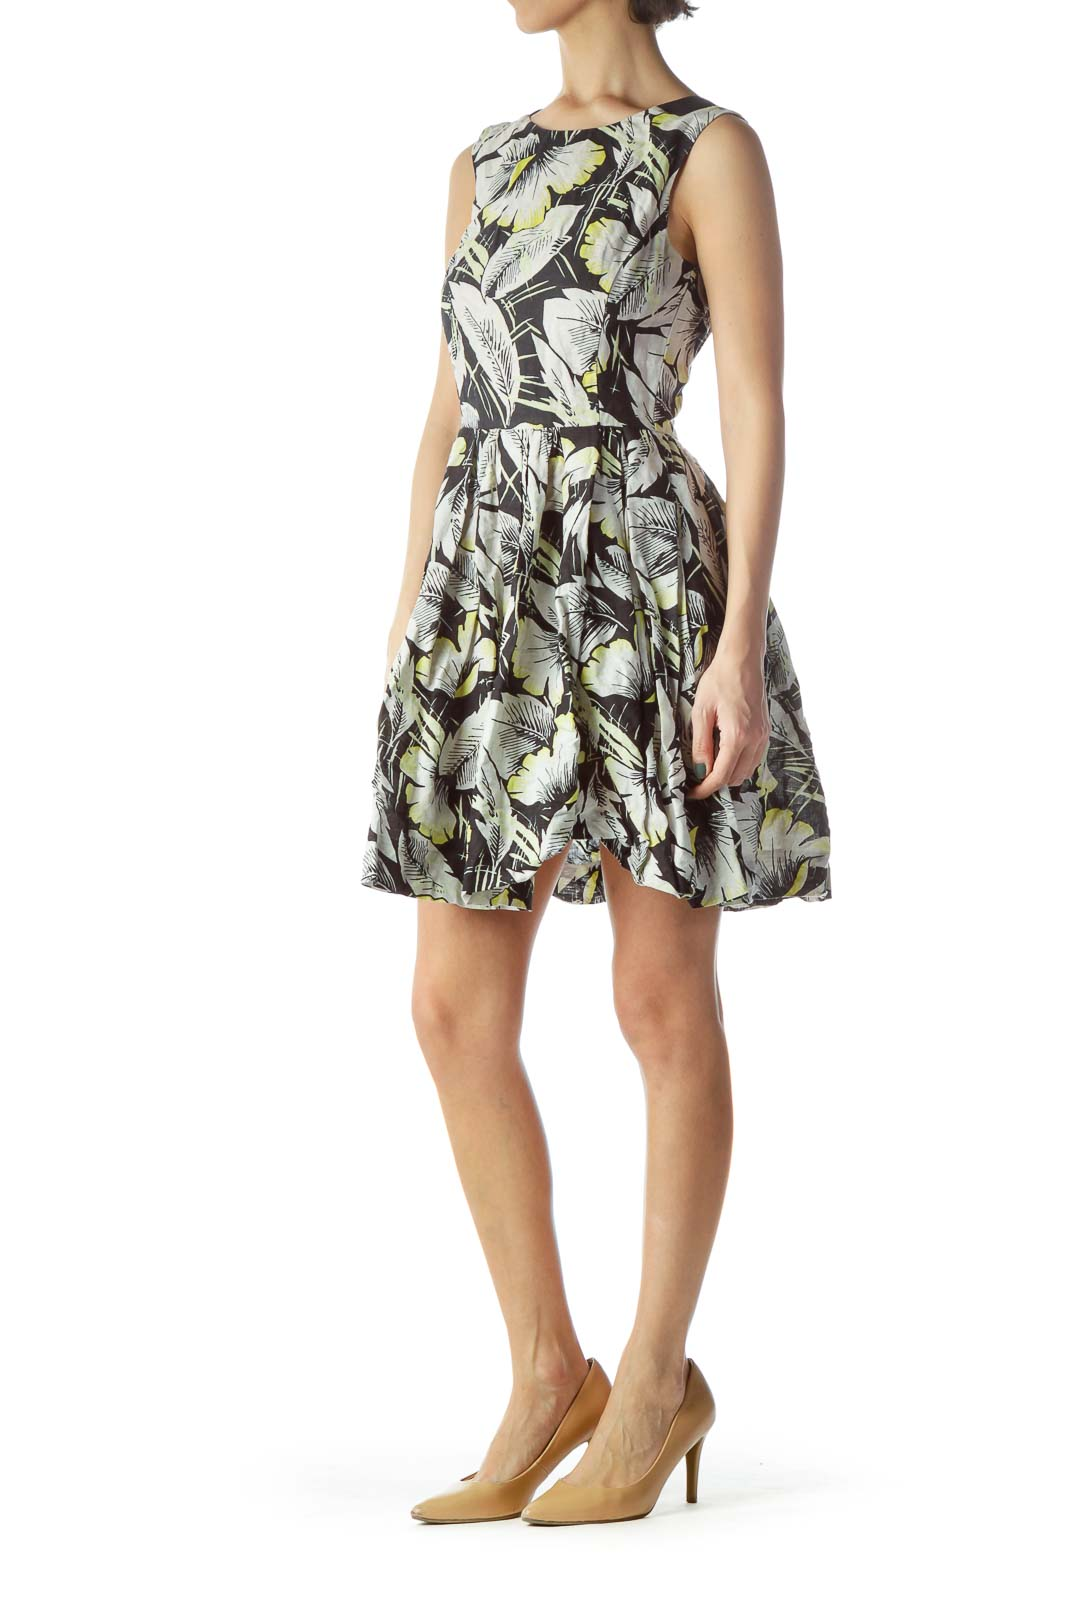 Black Gray Yellow Floral Print Flared Day Dress